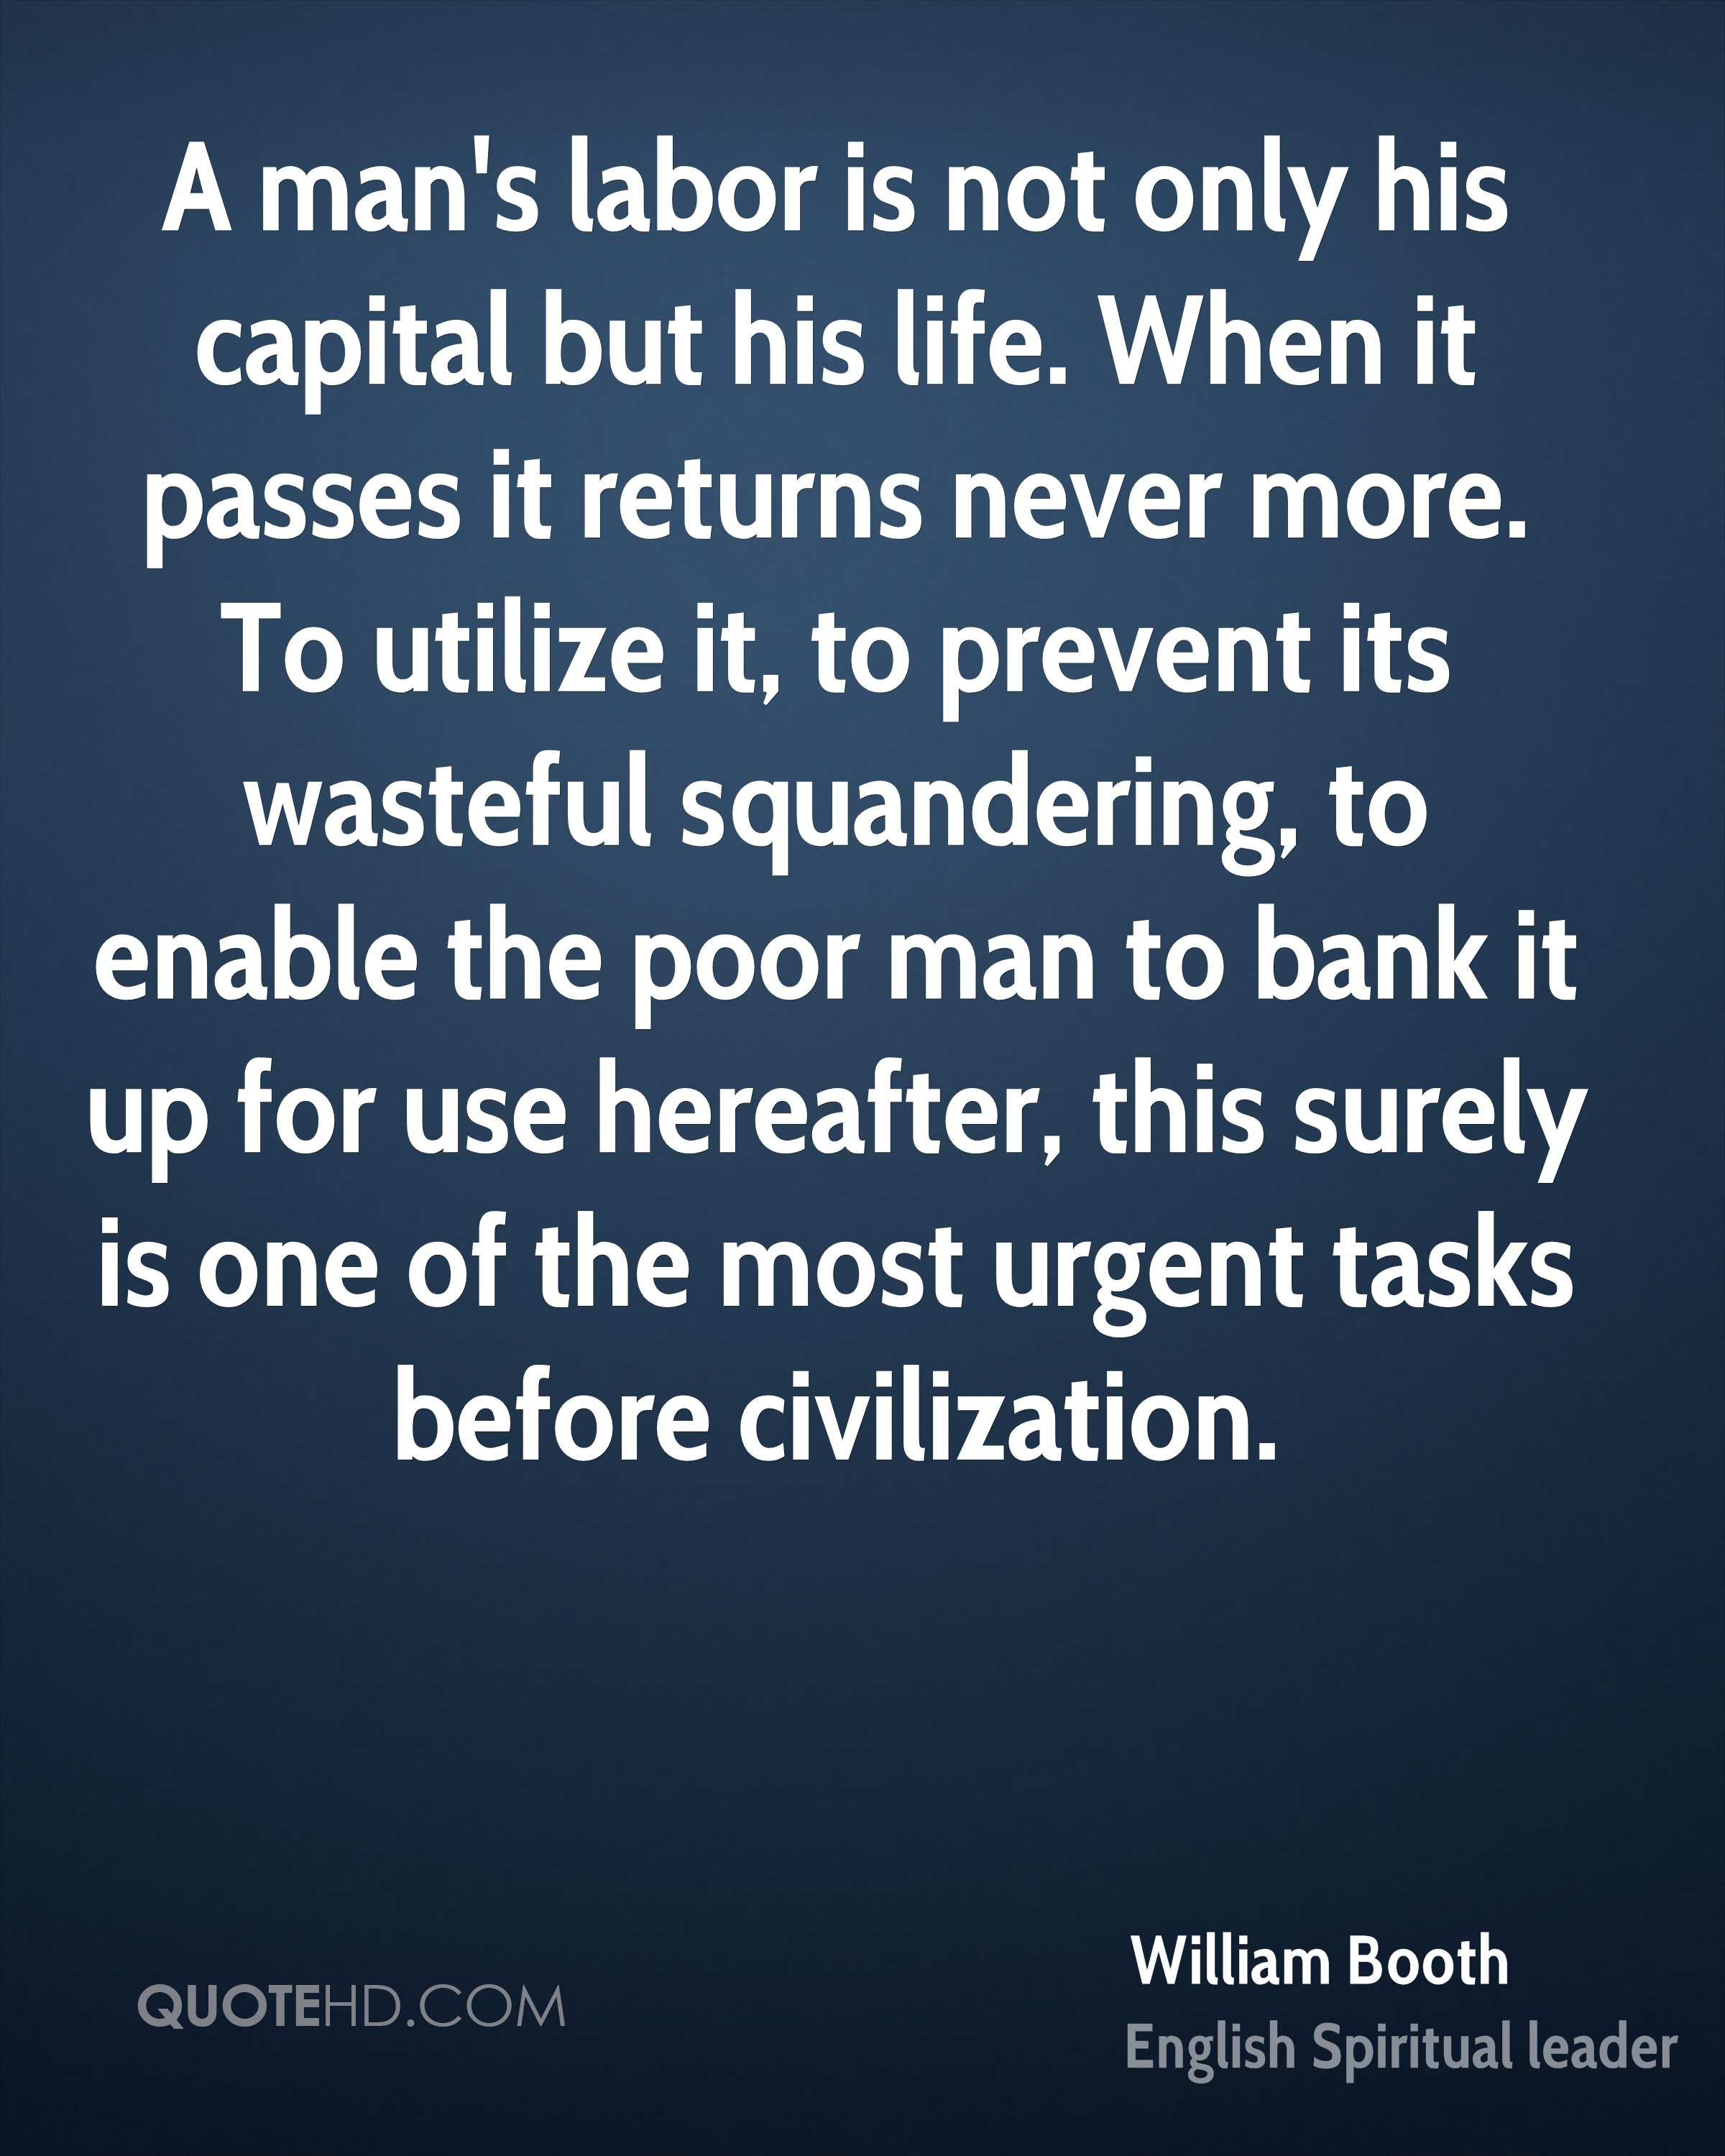 A man's labor is not only his capital but his life. When it passes it returns never more. To utilize it, to prevent its wasteful squandering, to enable the poor man to bank it up for use hereafter, this surely is one of the most urgent tasks before civilization.